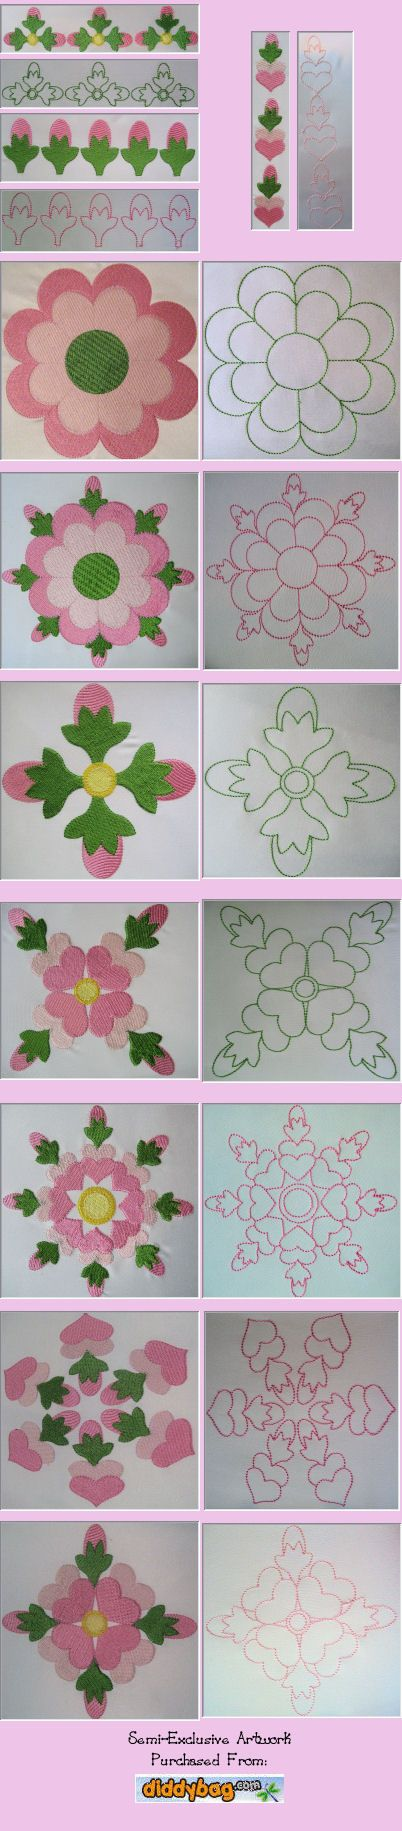 Rose of Sharon Quilt Block Set - $15.00 : The Country Needle Embroidery Designs®, Offers high quality, manually punched machine embroidery designs at affordable prices. Instant downloads available. Where quality designs and customer service are the priority! Join The Country Needle Embroidery Barn, our embroidery club for even more savings!